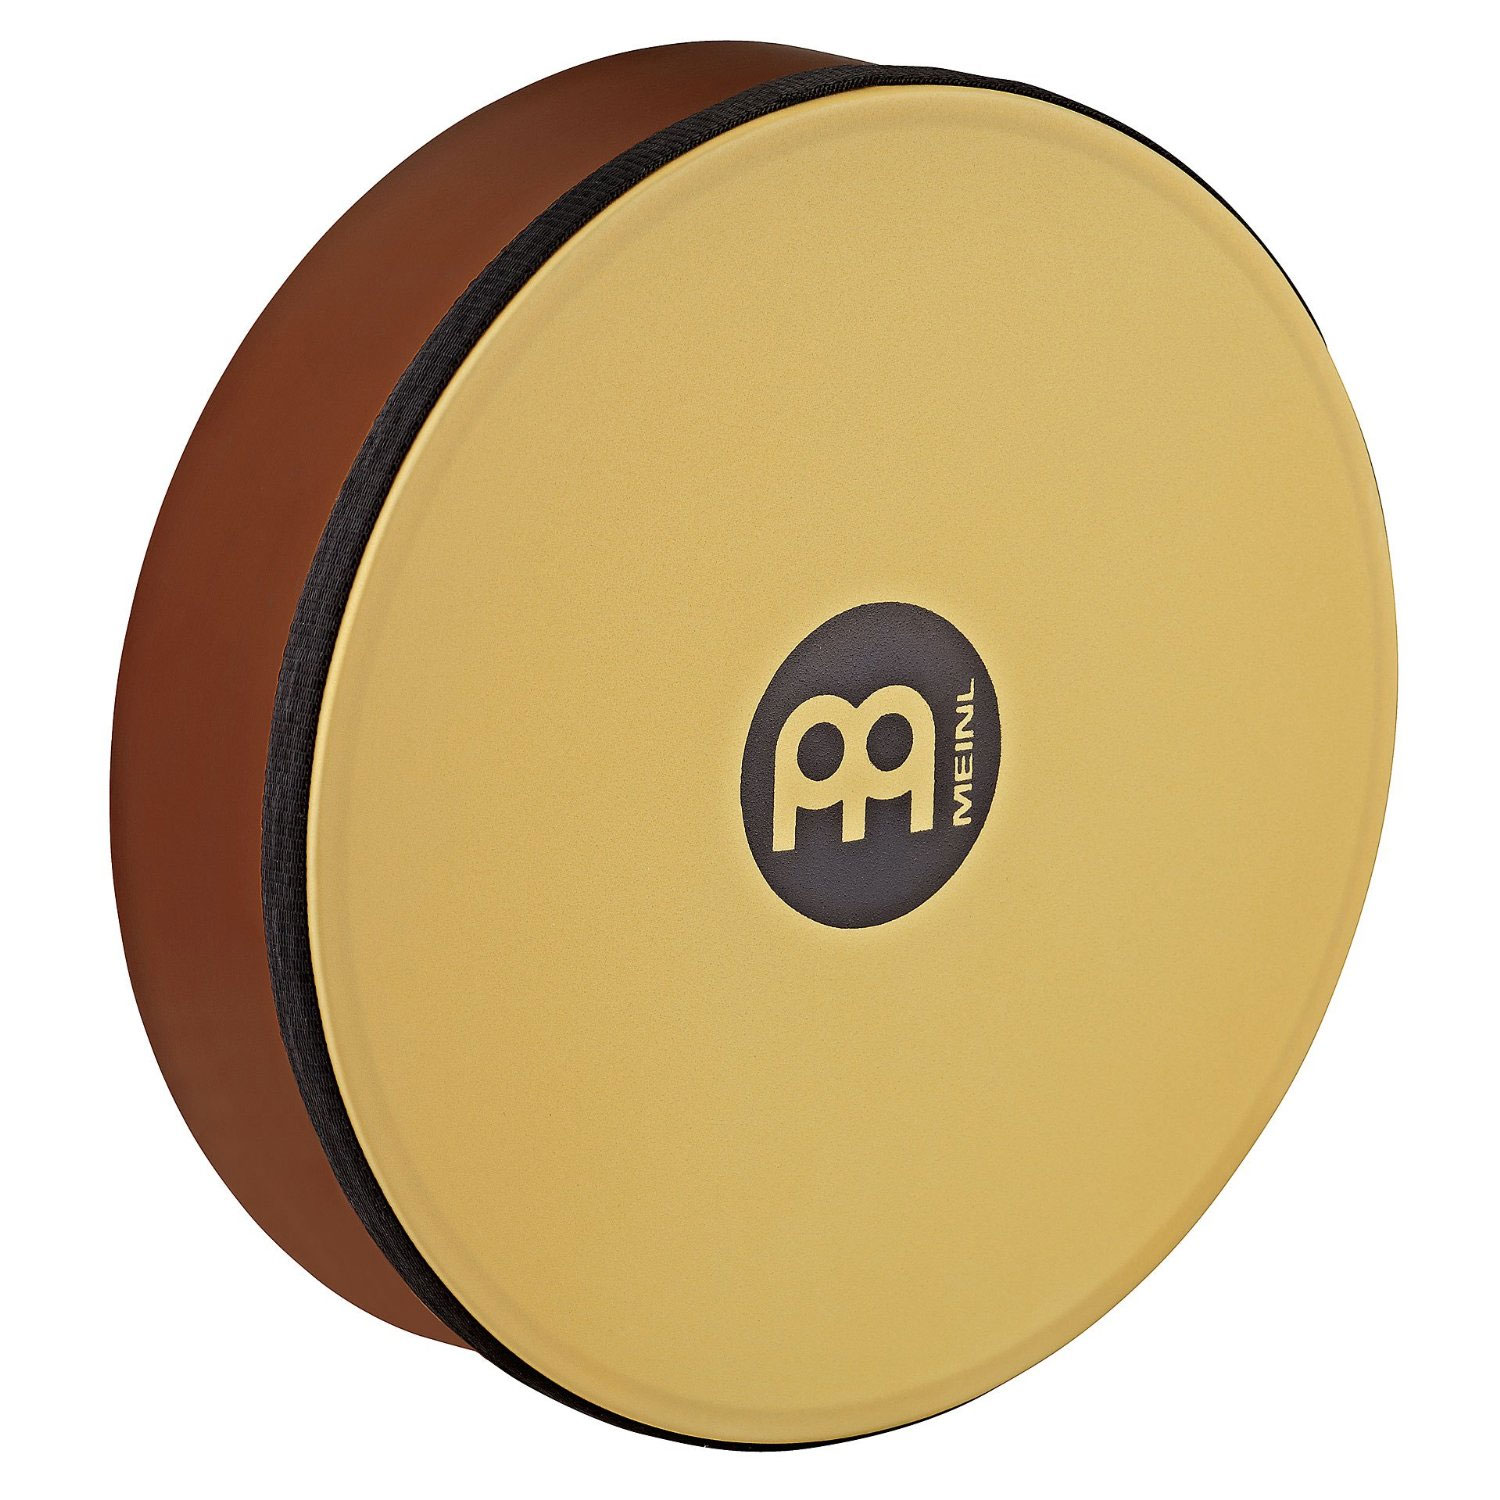 "Meinl 14"" Hand Drum with True Feel Head"